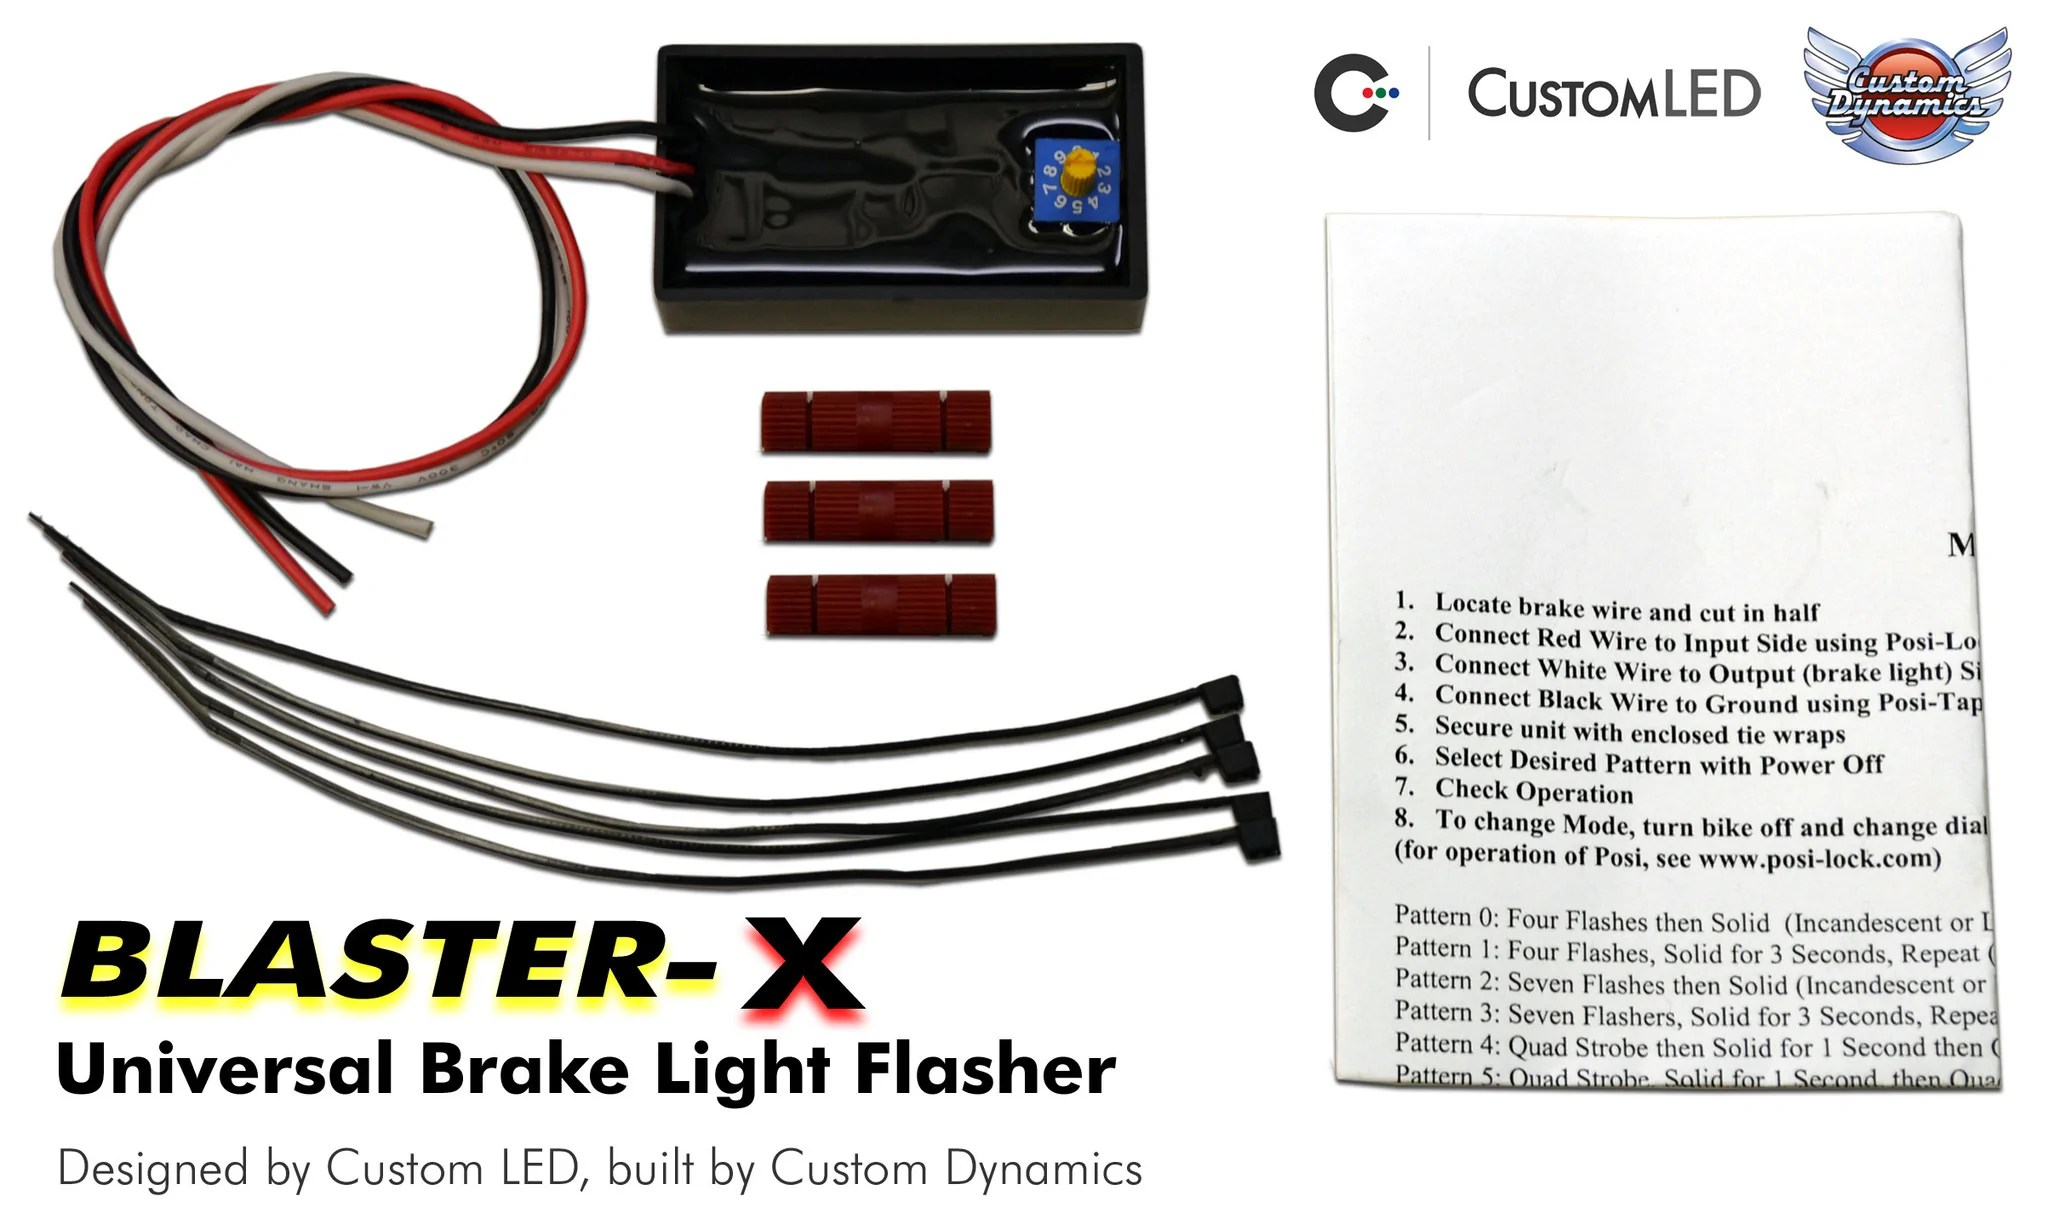 medium resolution of magic strobes brake light flasher for standard tail light systems